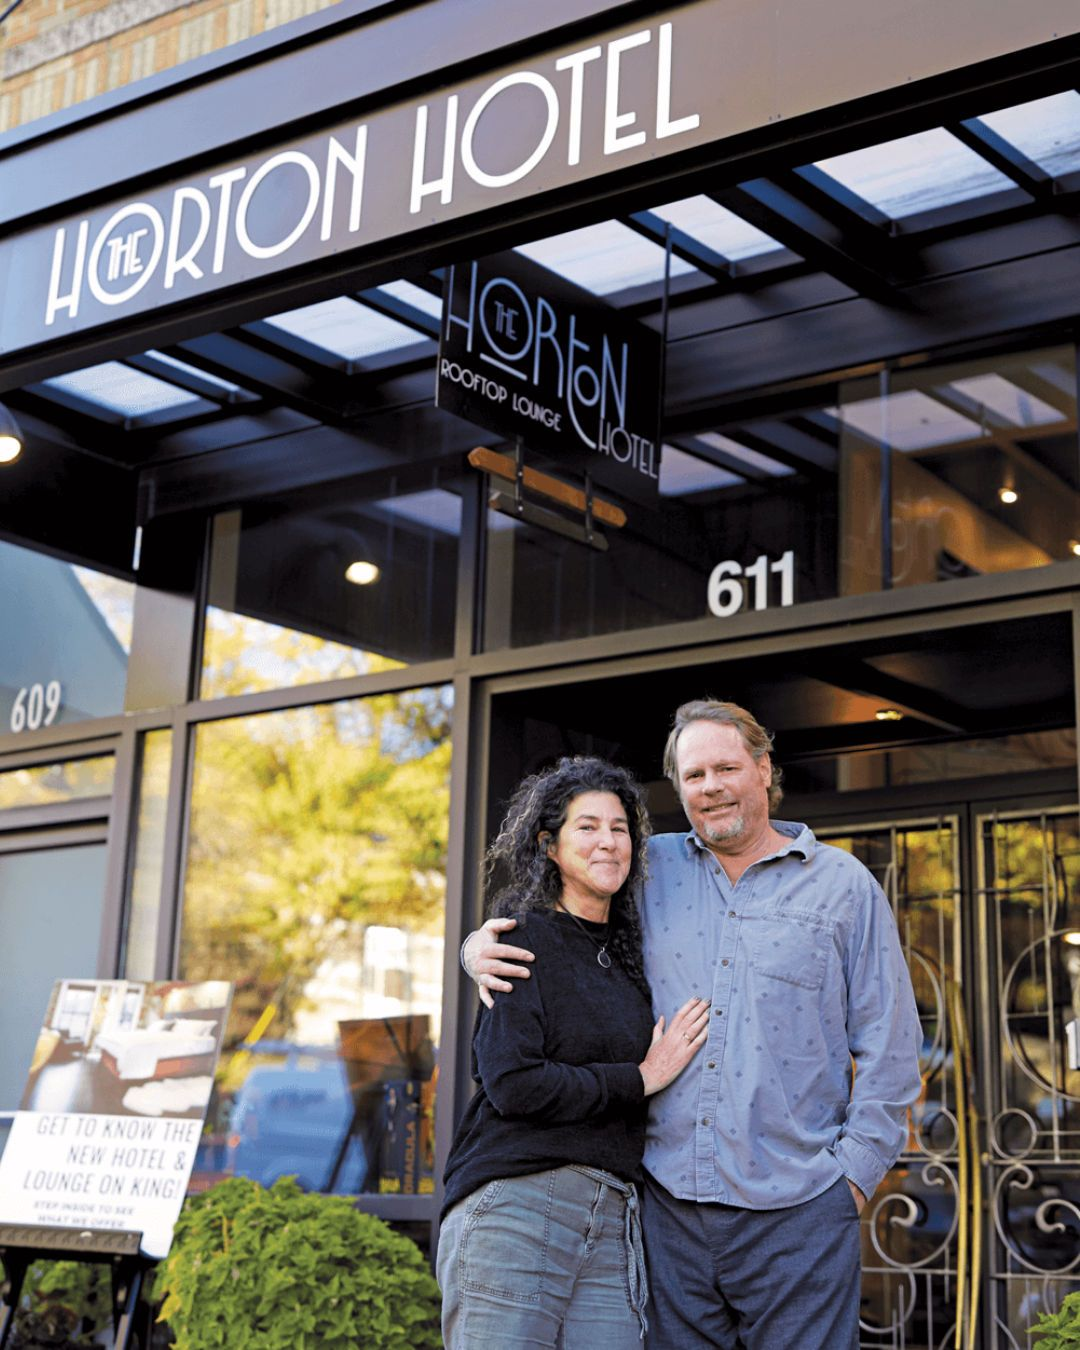 The Horton Hotel & Rooftop Lounge - Boone, North Carolina's Downtown World-Class Gem - Perfectly Aligned for Harmonious Transfer of Ownership